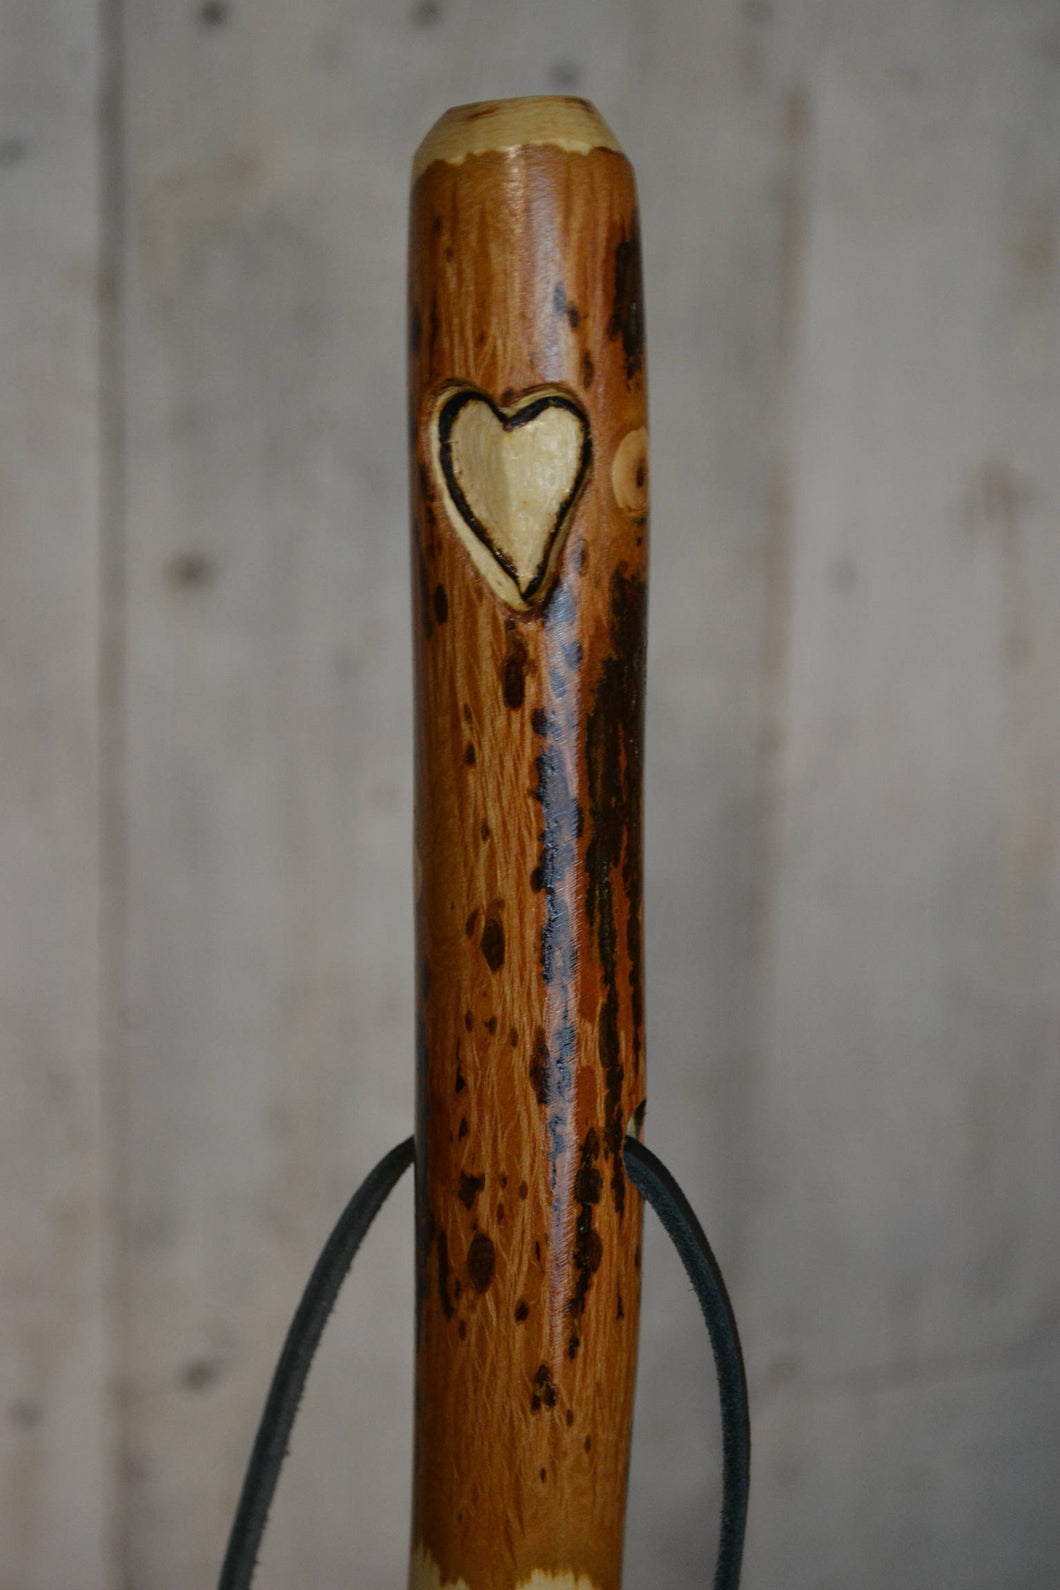 Heart Carving on Hickory Walking Stick, Staff, walkingstick, Kiln Dried, Trecker, Love Carving, 54